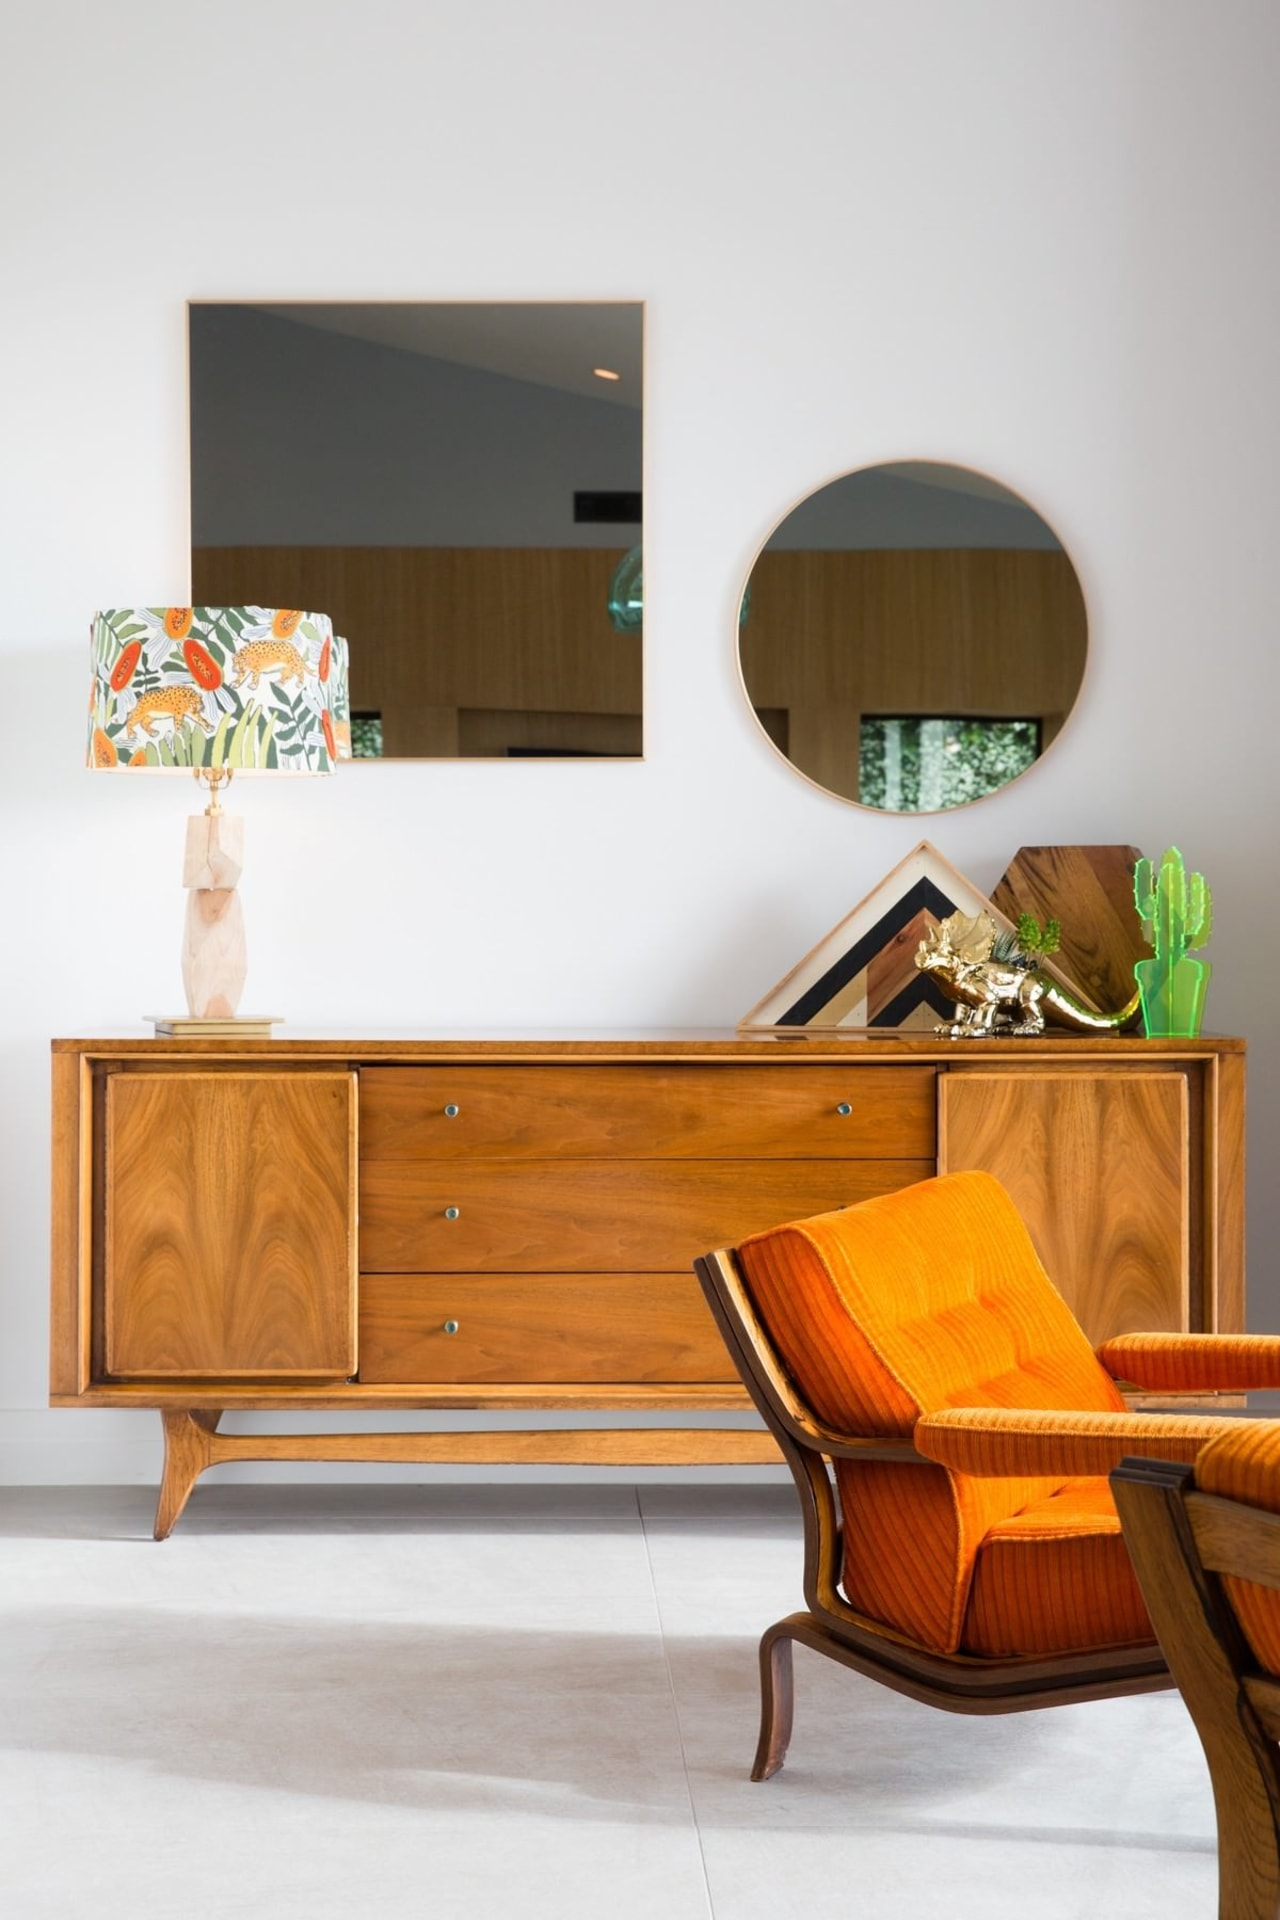 Some of the appointments inside chest of drawers, drawer, furniture, interior design, product design, sideboard, table, white